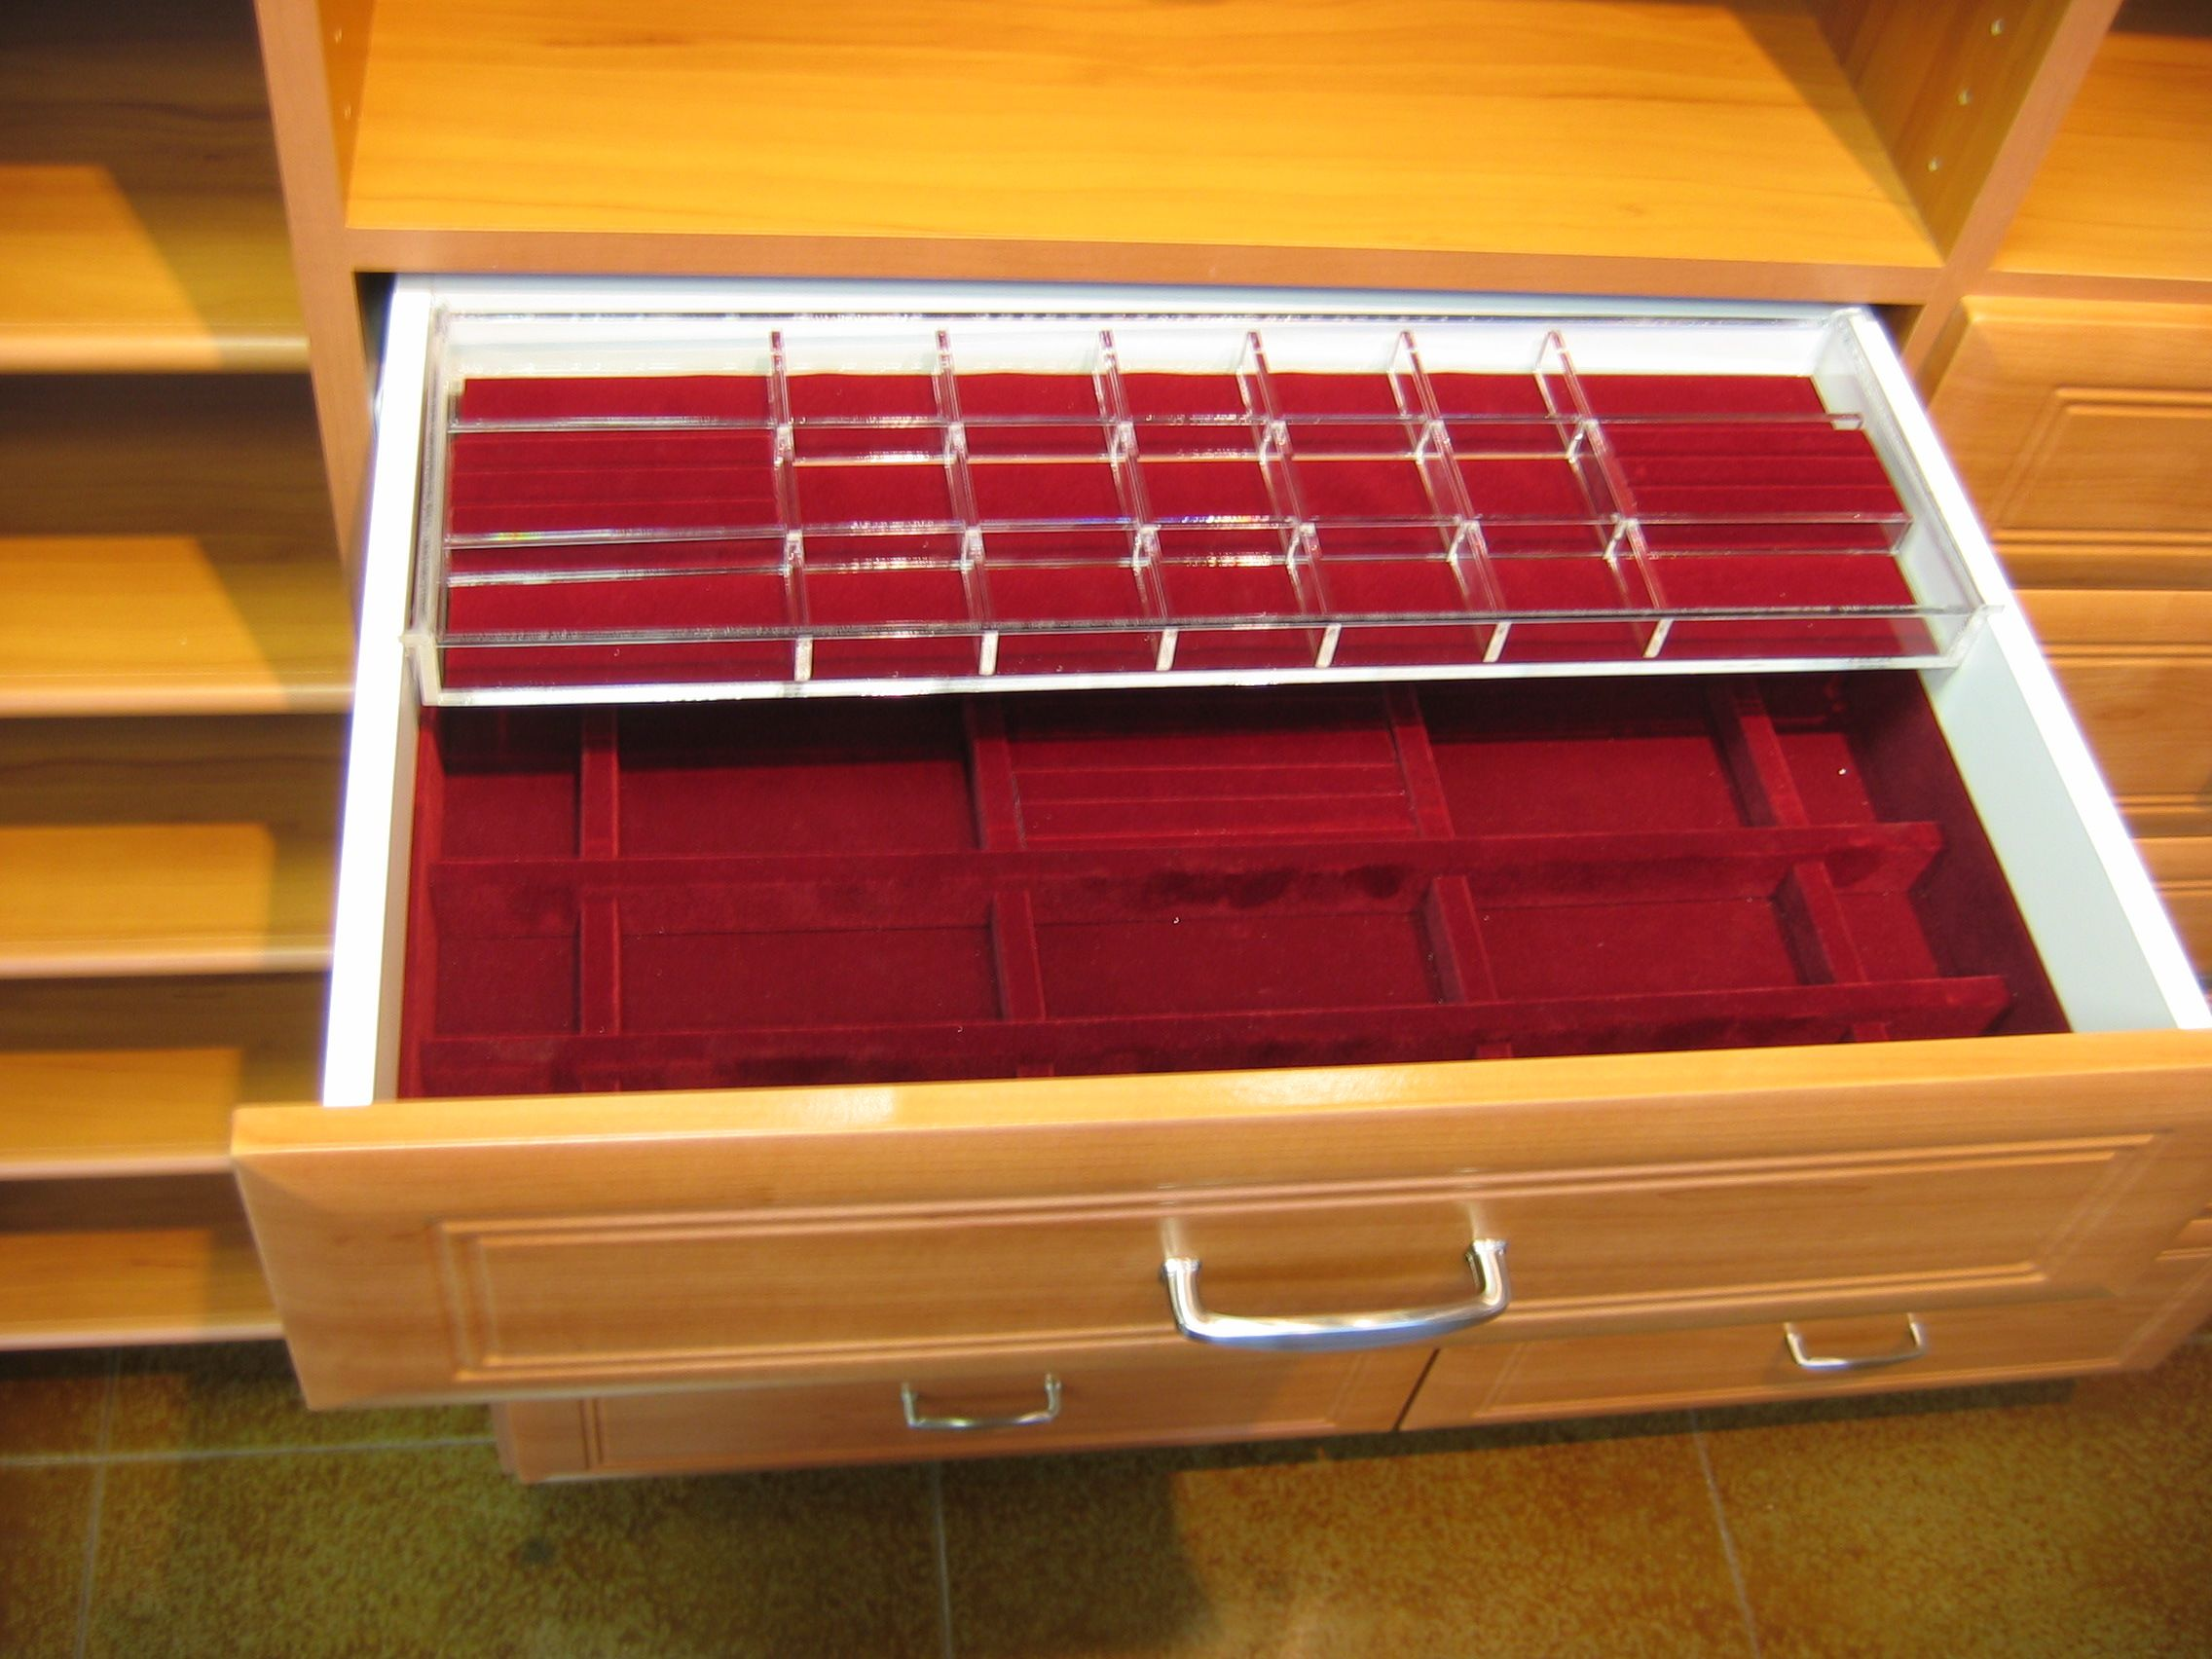 Classy jewelry drawer organizer available in red or black velvet